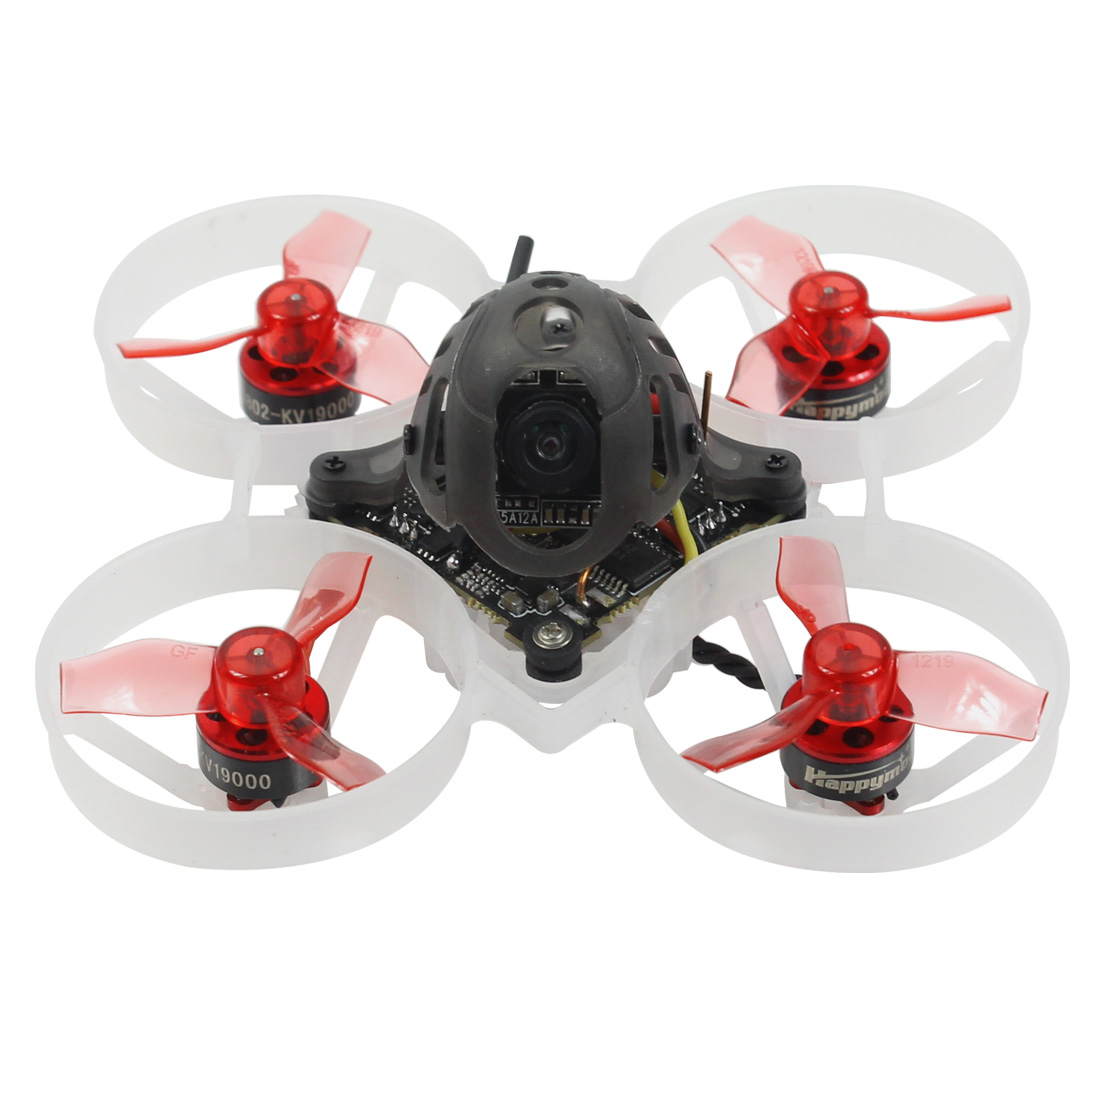 Happymodel Mobula6 Mobula 6 1S 65mm Brushless Bwhoop FPV Racing Drone With AIO 4IN1 Crazybee F4 Lite Flight Controll